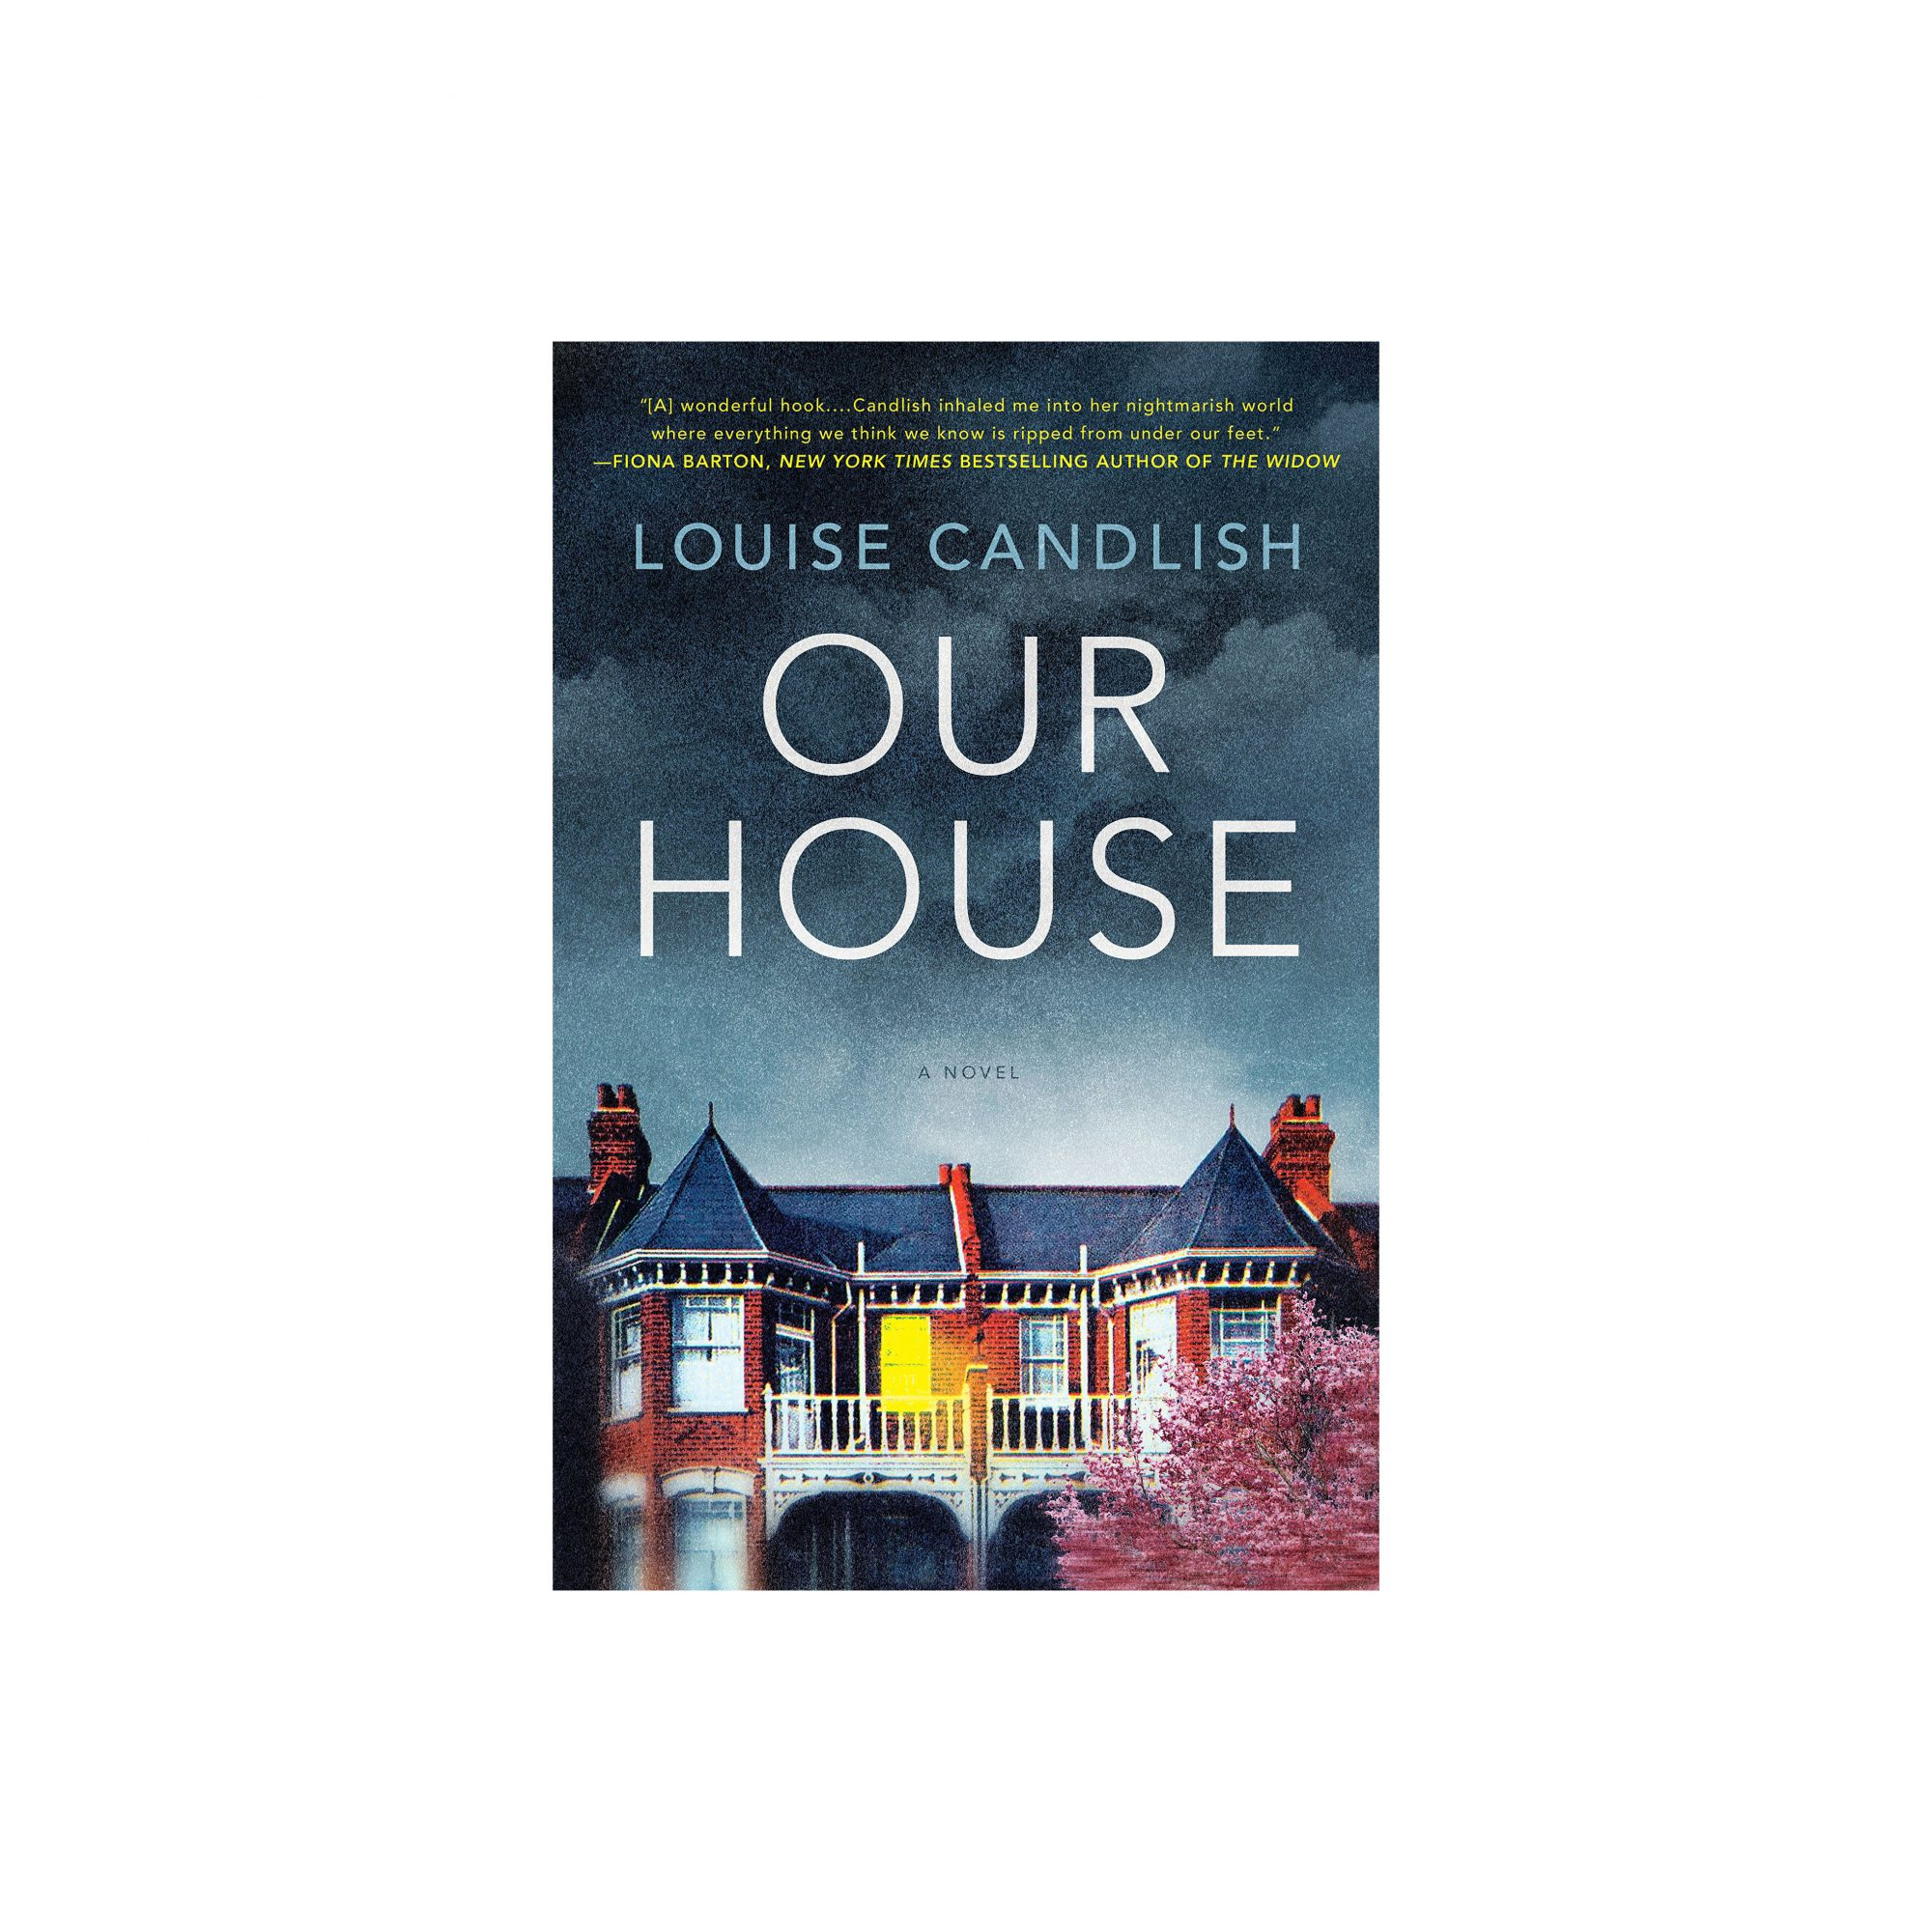 Our House, by Louise Candlish